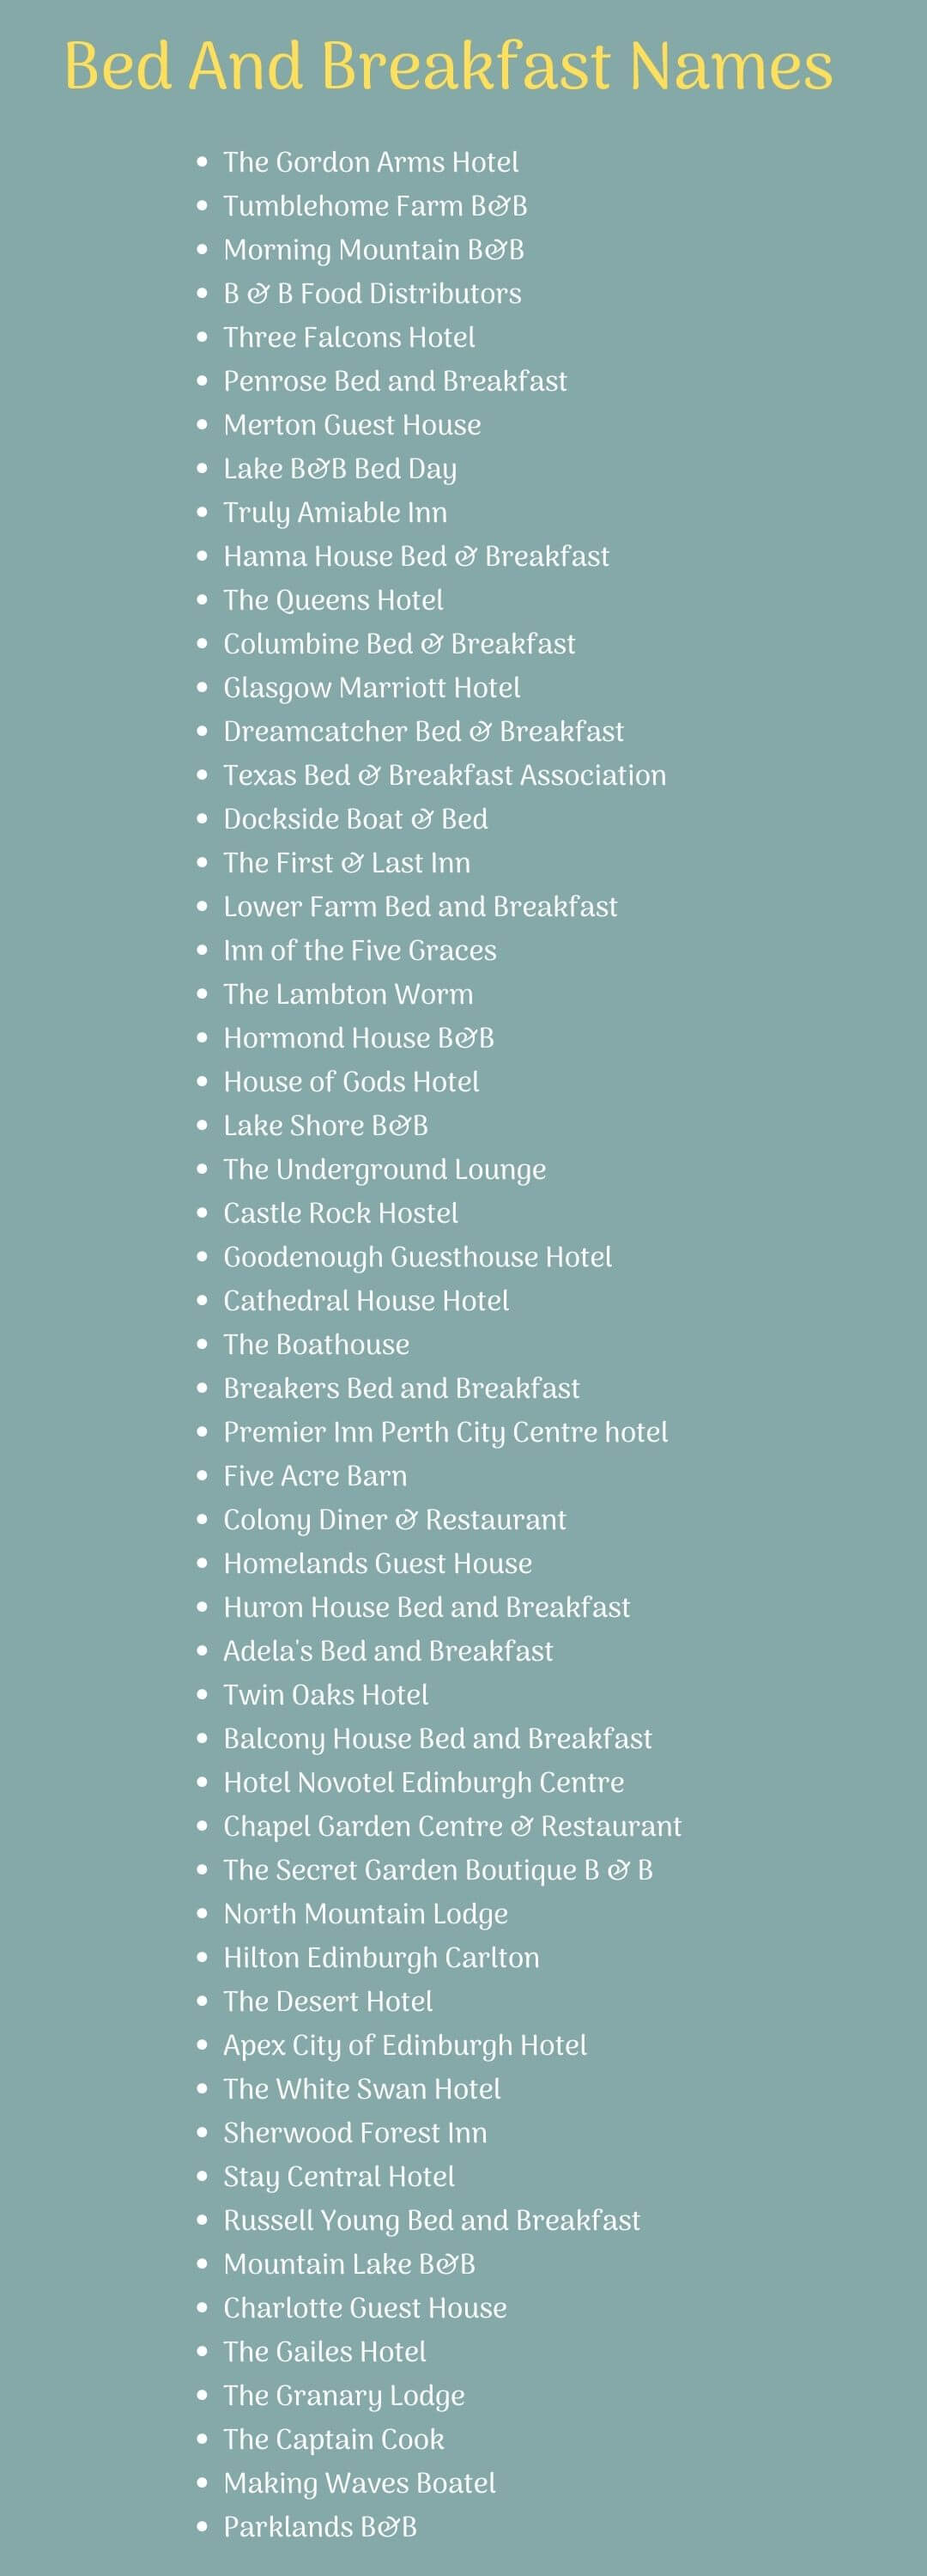 Bed And Breakfast Names ideas